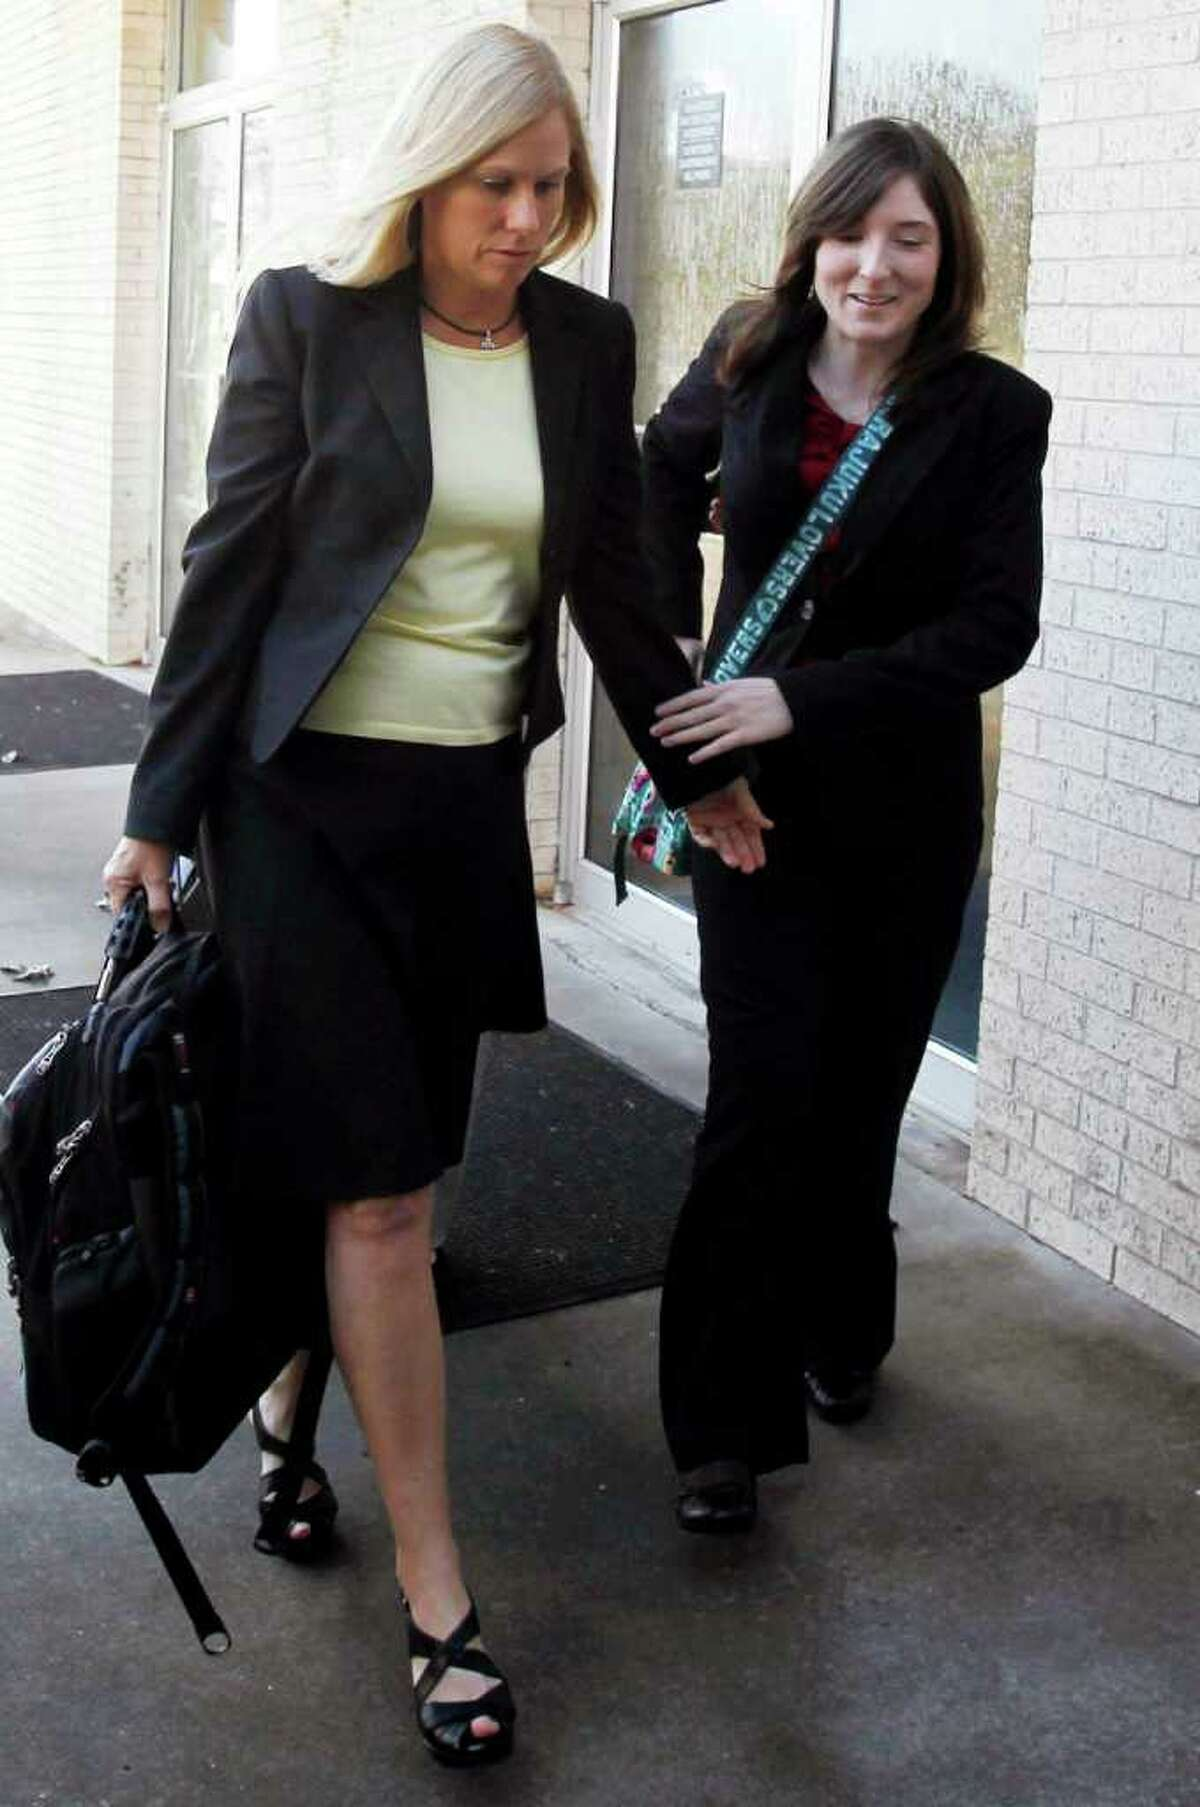 Hallie Adams, left, and her daughter, Hillary Adams, arrive at the Aransas County Courthouse in Rockport, Texas, on Monday, Nov. 21, 2011. Hallie Adams ex-husband, Judge William Adams, is fighting for visitation with his 10-year-old daughter after a temporary restraining order was issued, barring him from visiting the girl without getting permission from her mother, his ex-wife Hallie Adams. The restraining order was issued following the October posting of a 2004 video on YouTube showing Adams beating his older daughter, Hillary Adams. (AP Photo/Corpus Christi Caller-Times, Michael Zamora) MAGS OUT; TV OUT